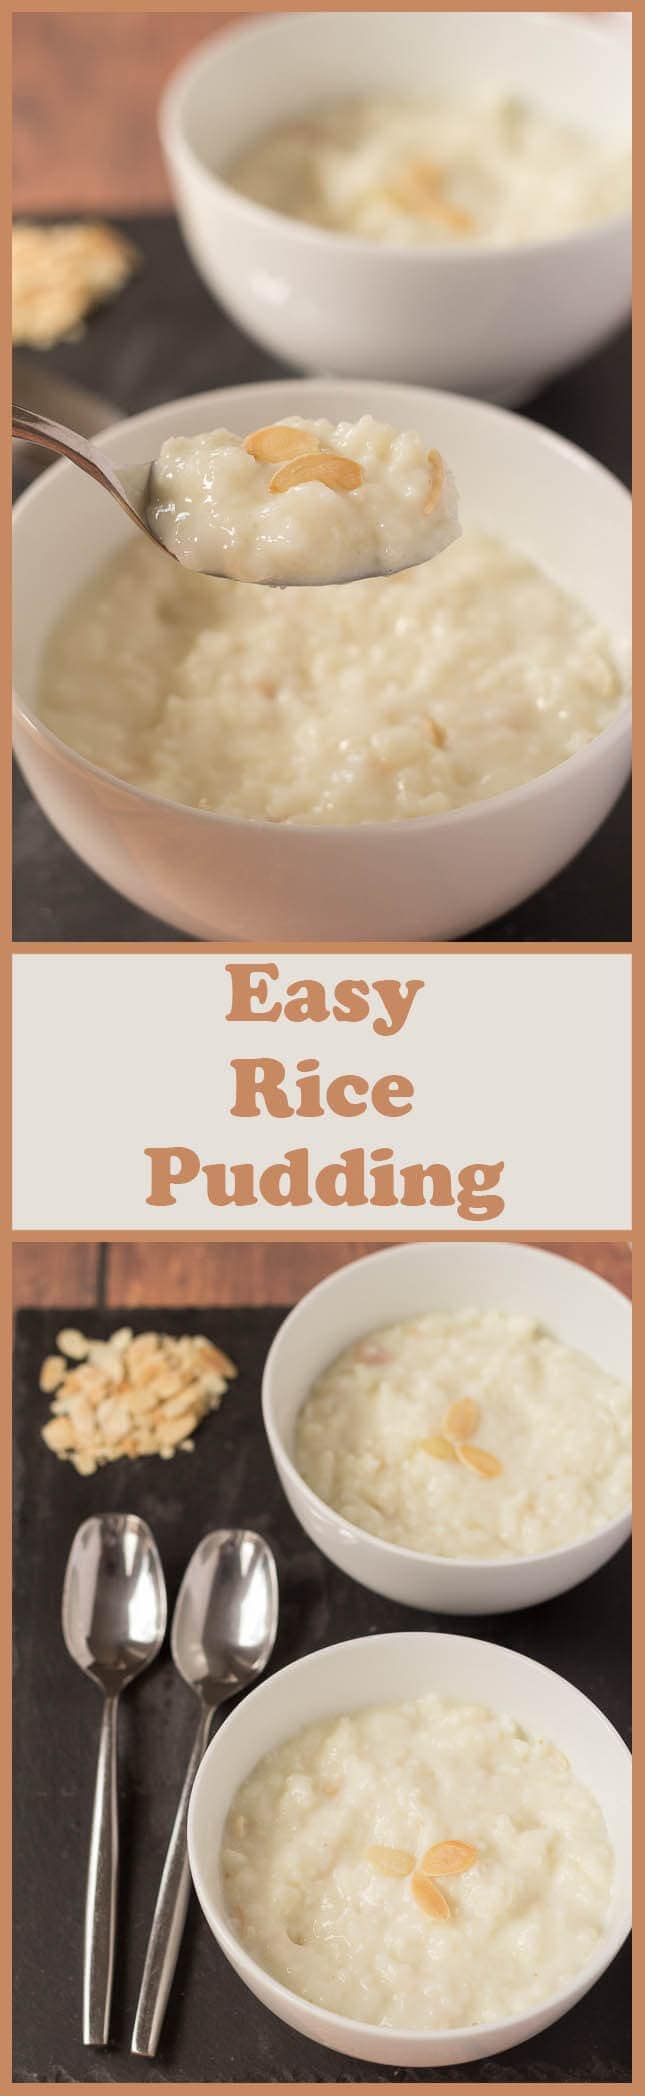 This creamy, delicious and satisfying easy rice pudding version tastes just as good as the original recipe but has less calories and fat.